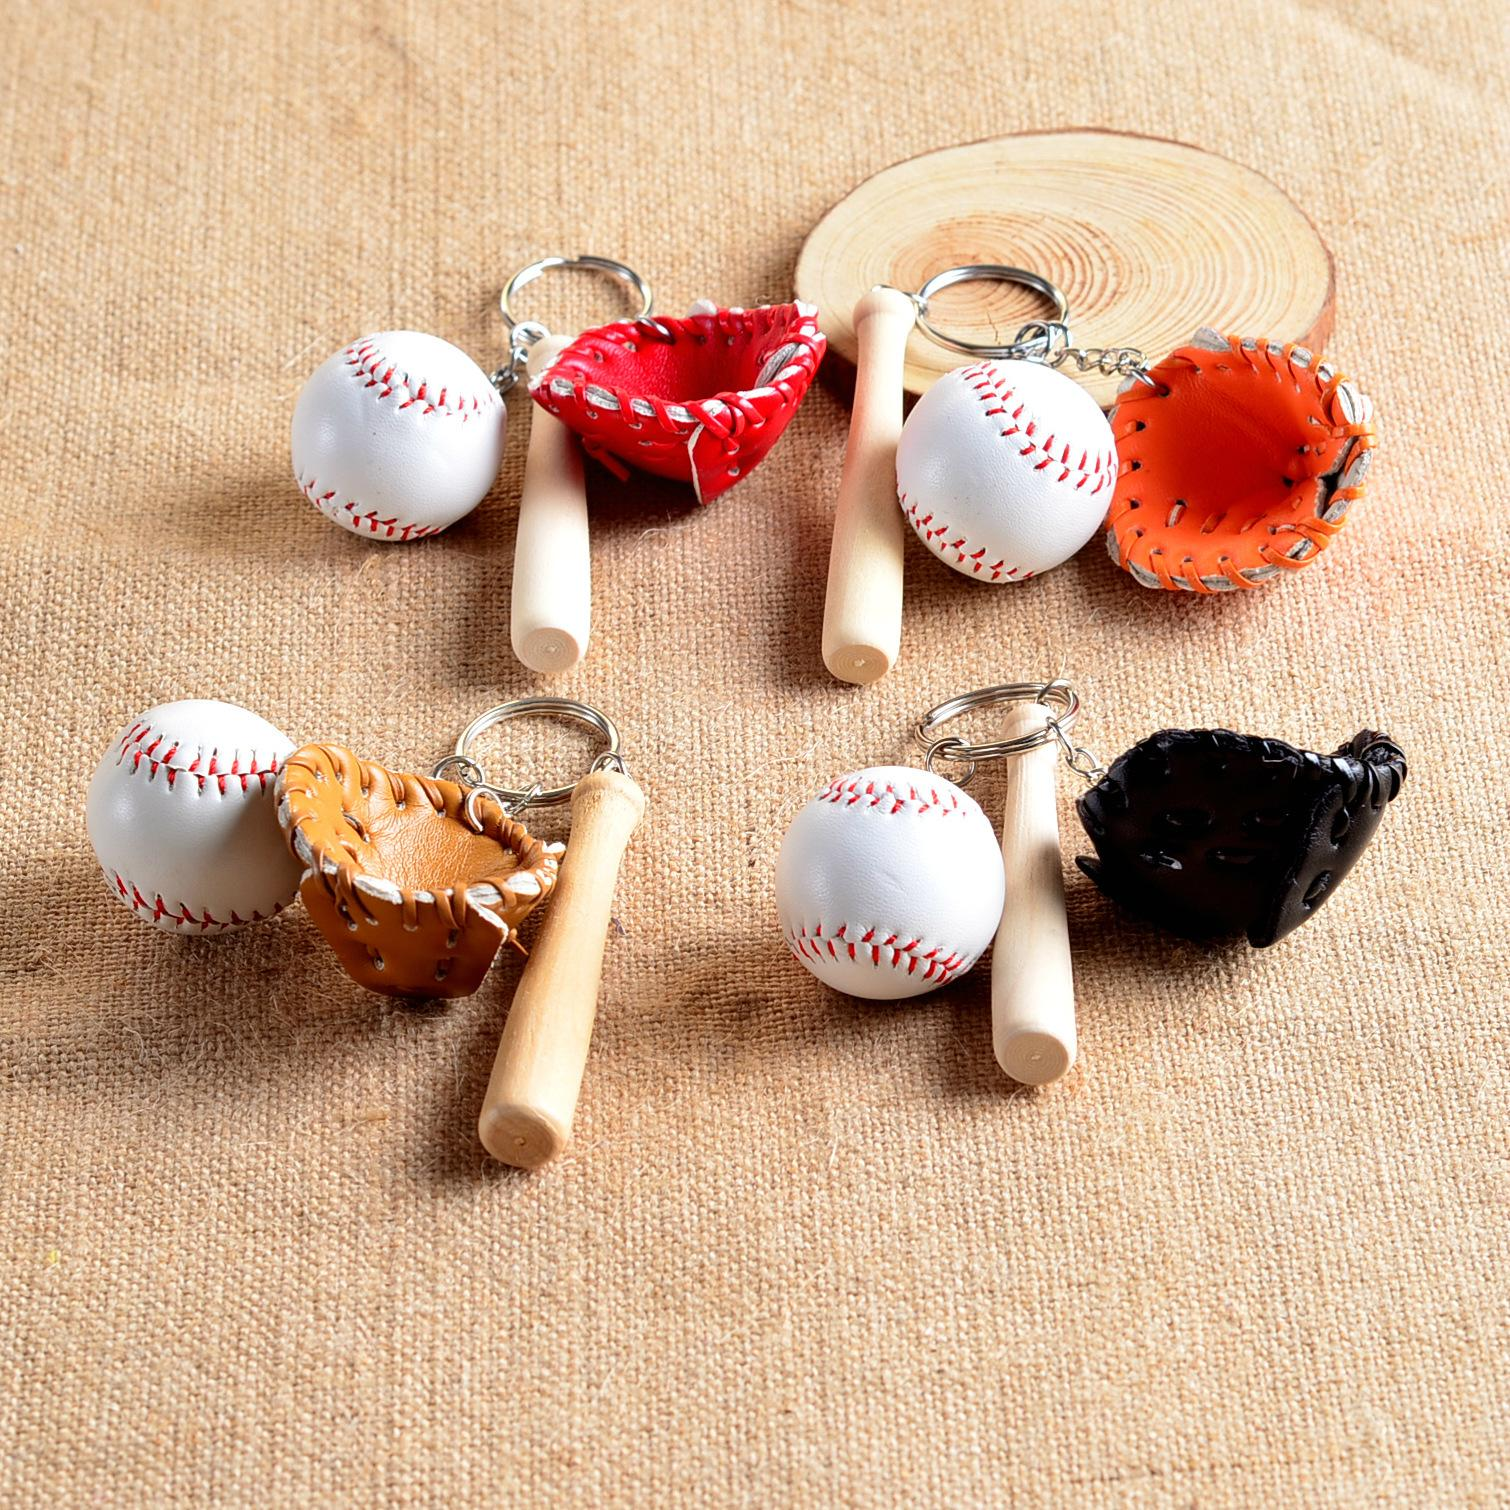 MOQ;10pcs Mini Three-piece Baseball glove wooden bat keychain sports Car Key Chain Key Ring Gift For Man Women wholesale